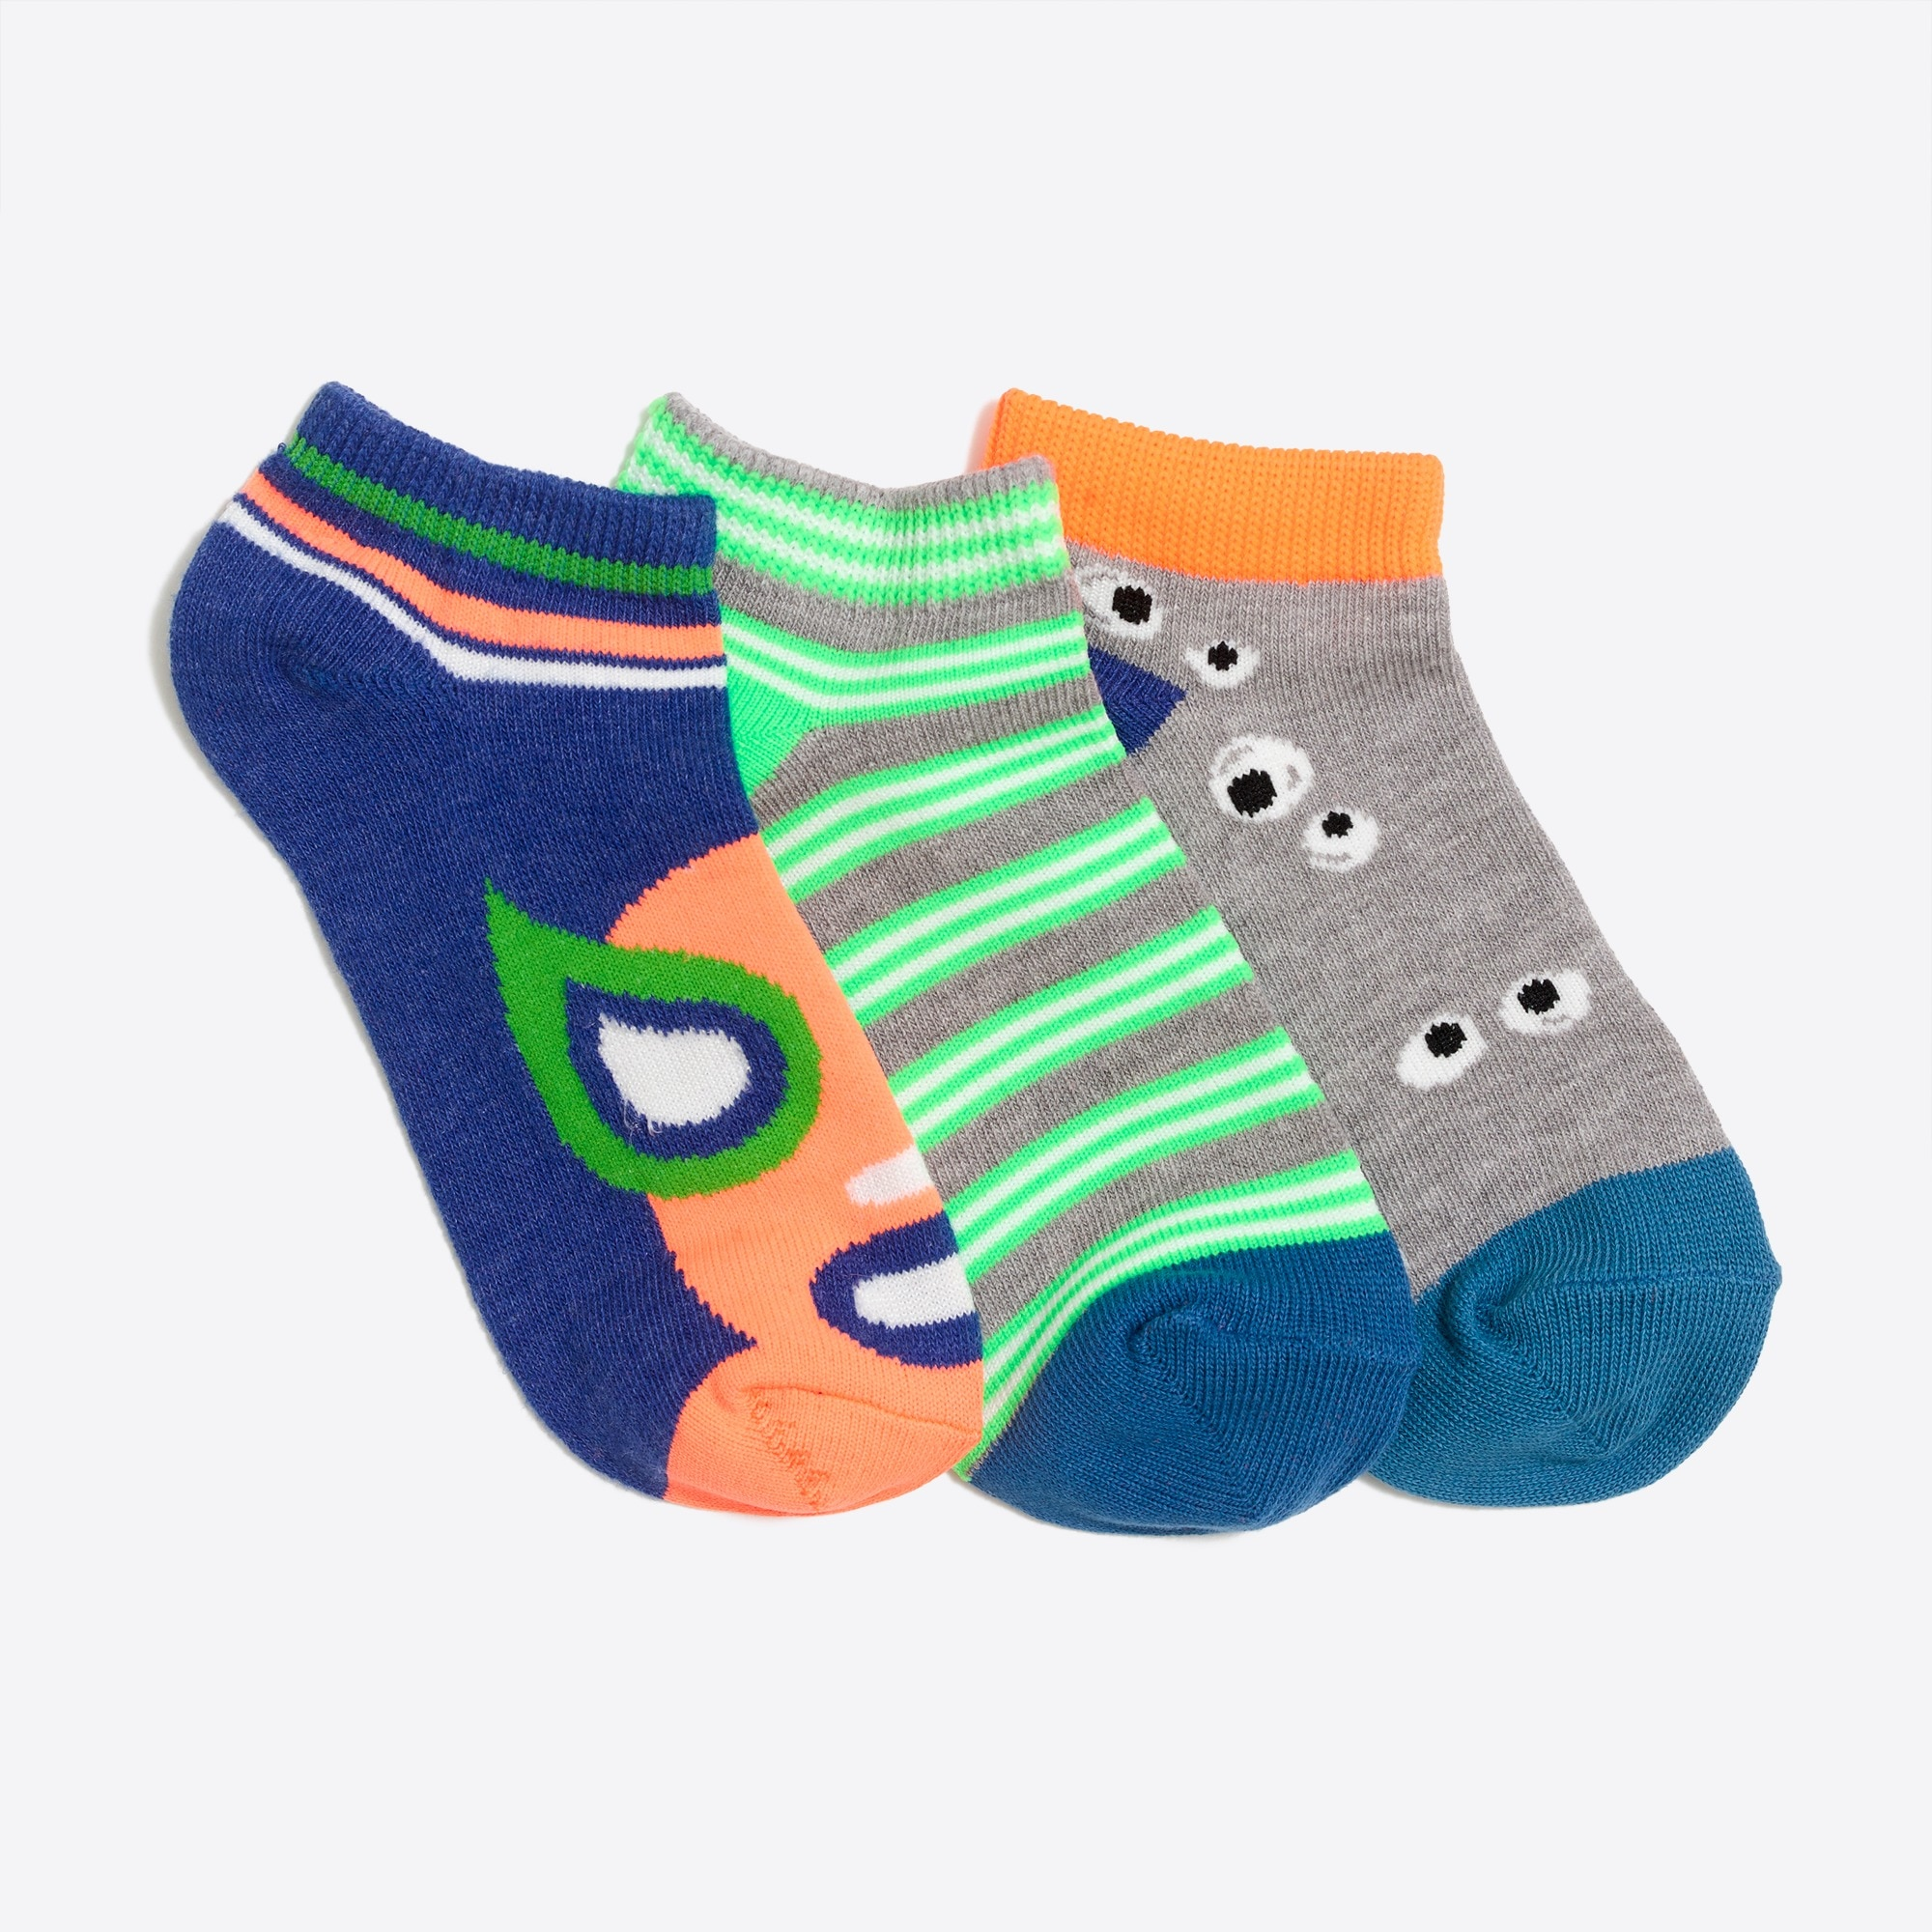 boys' hero eyes ankle socks three-pack : factoryboys shoes & socks